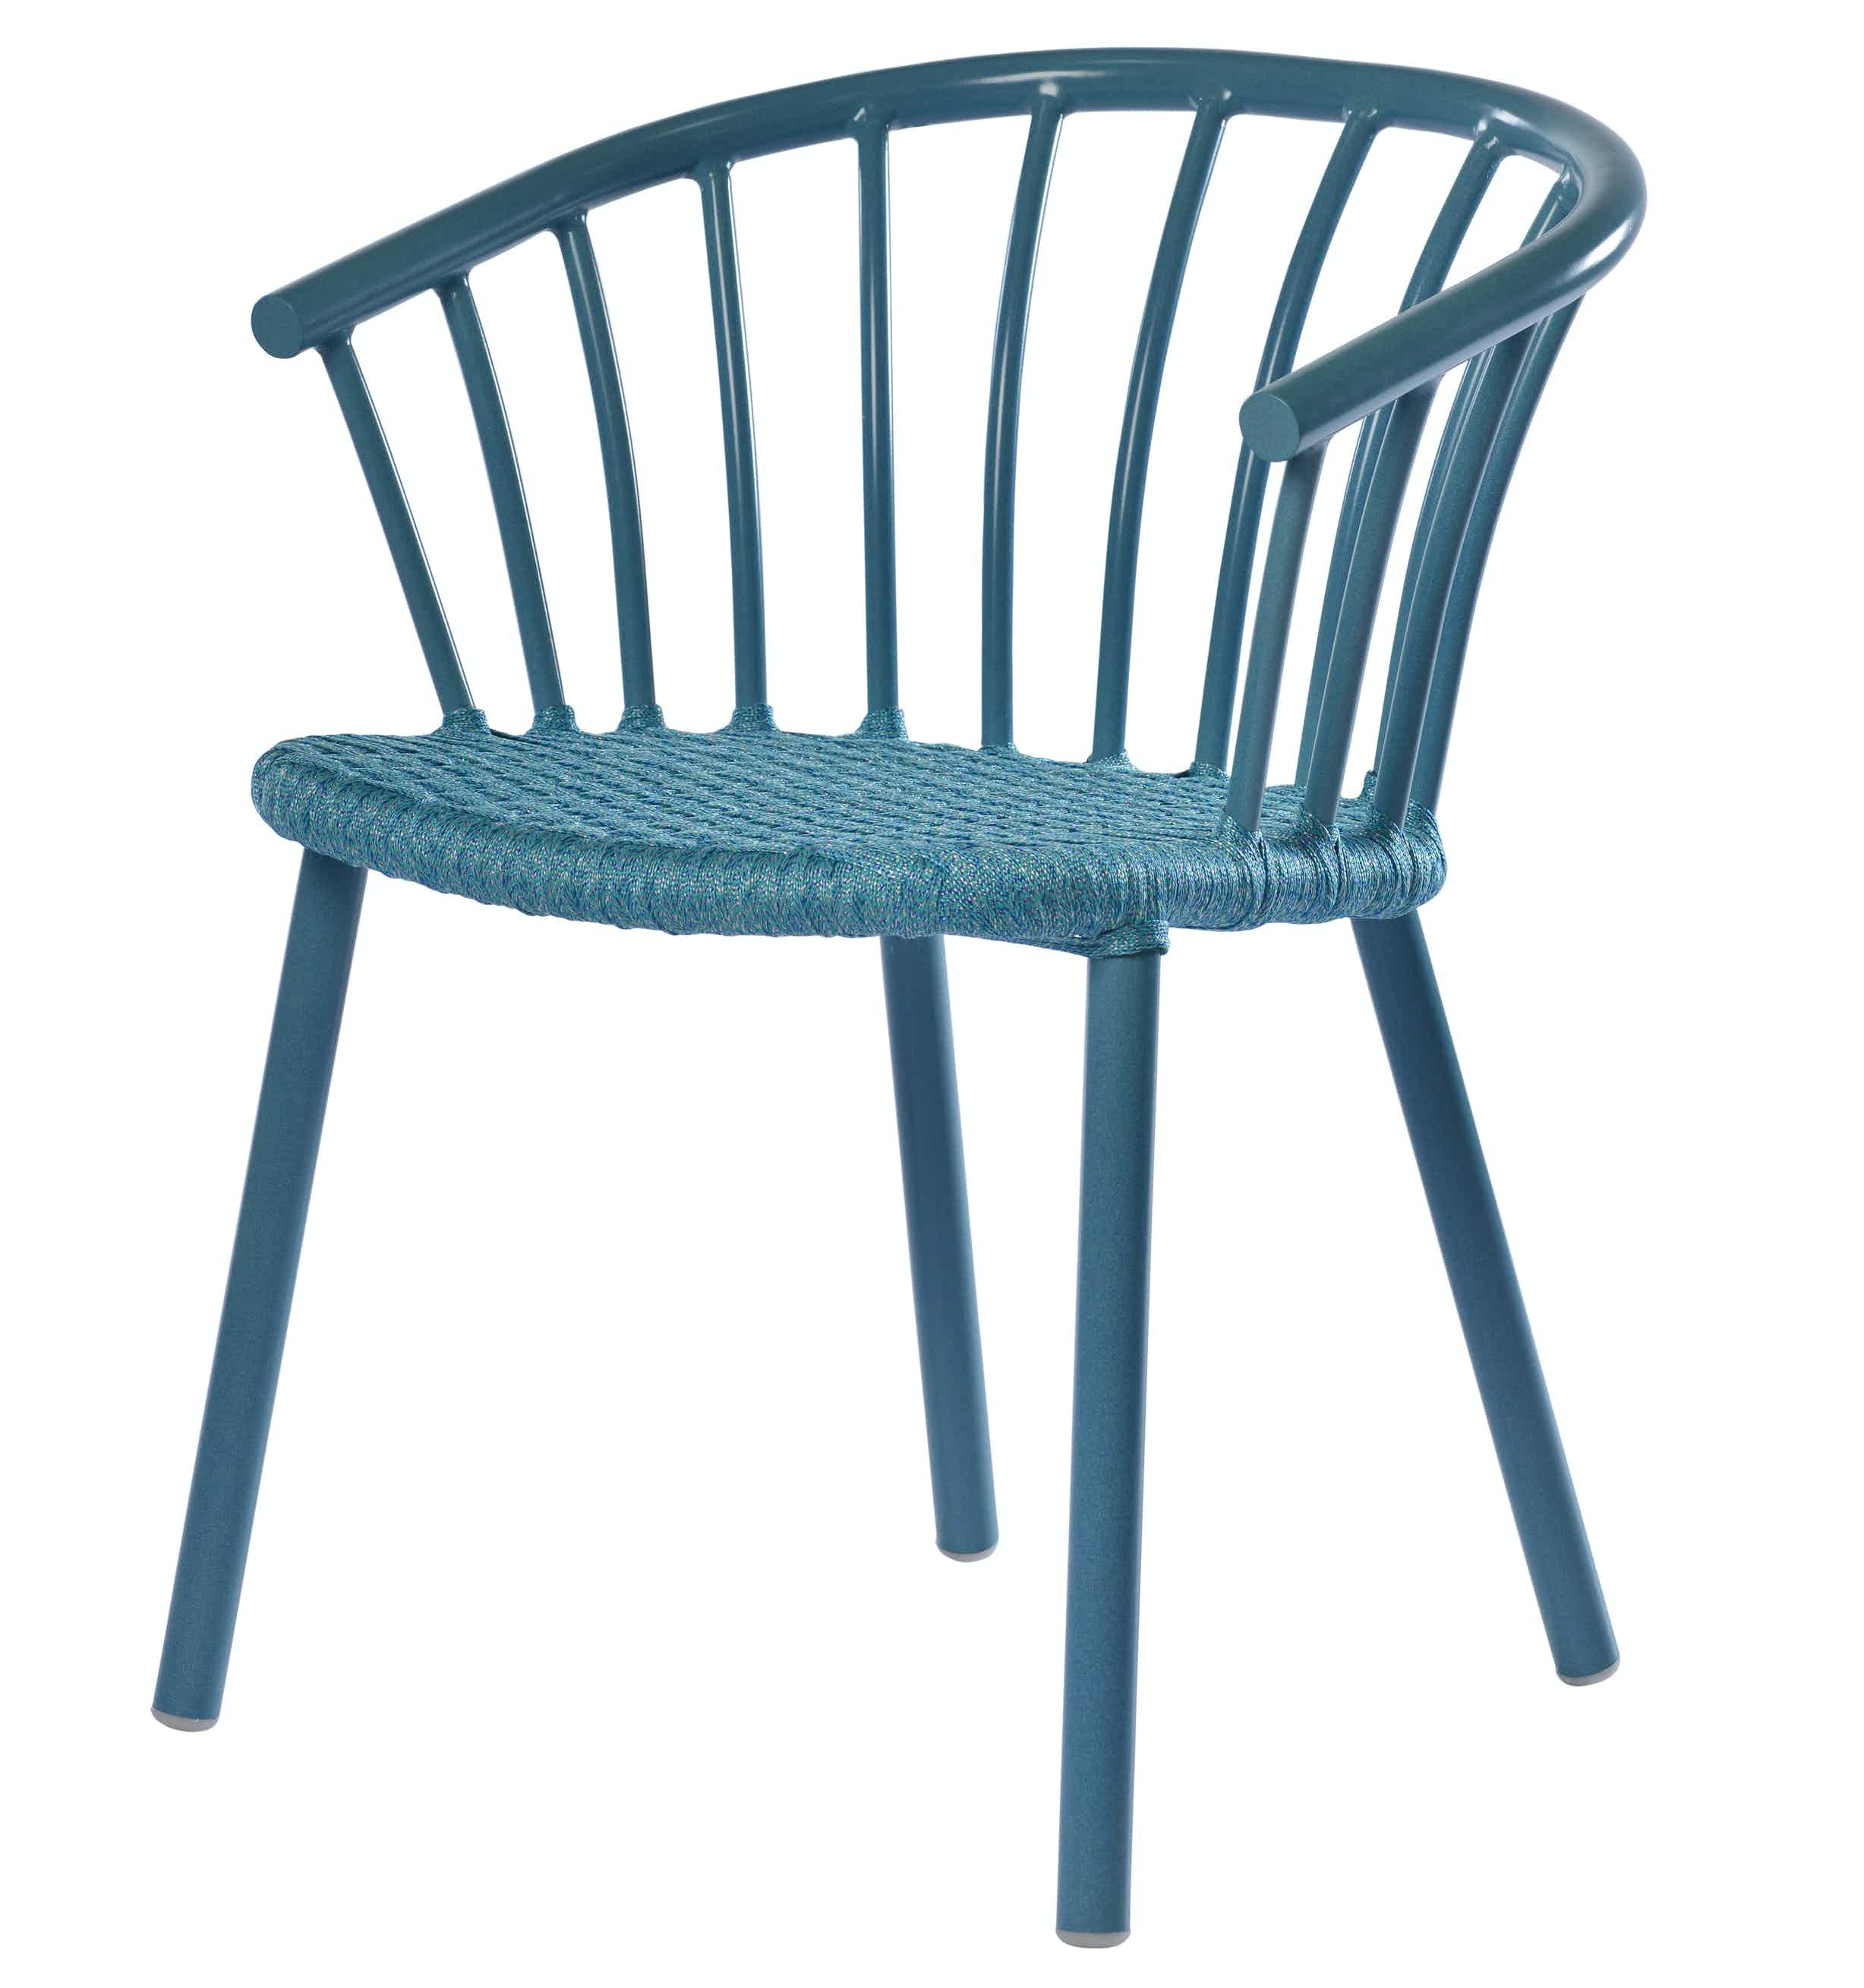 Tidelli biarritz chair haute living